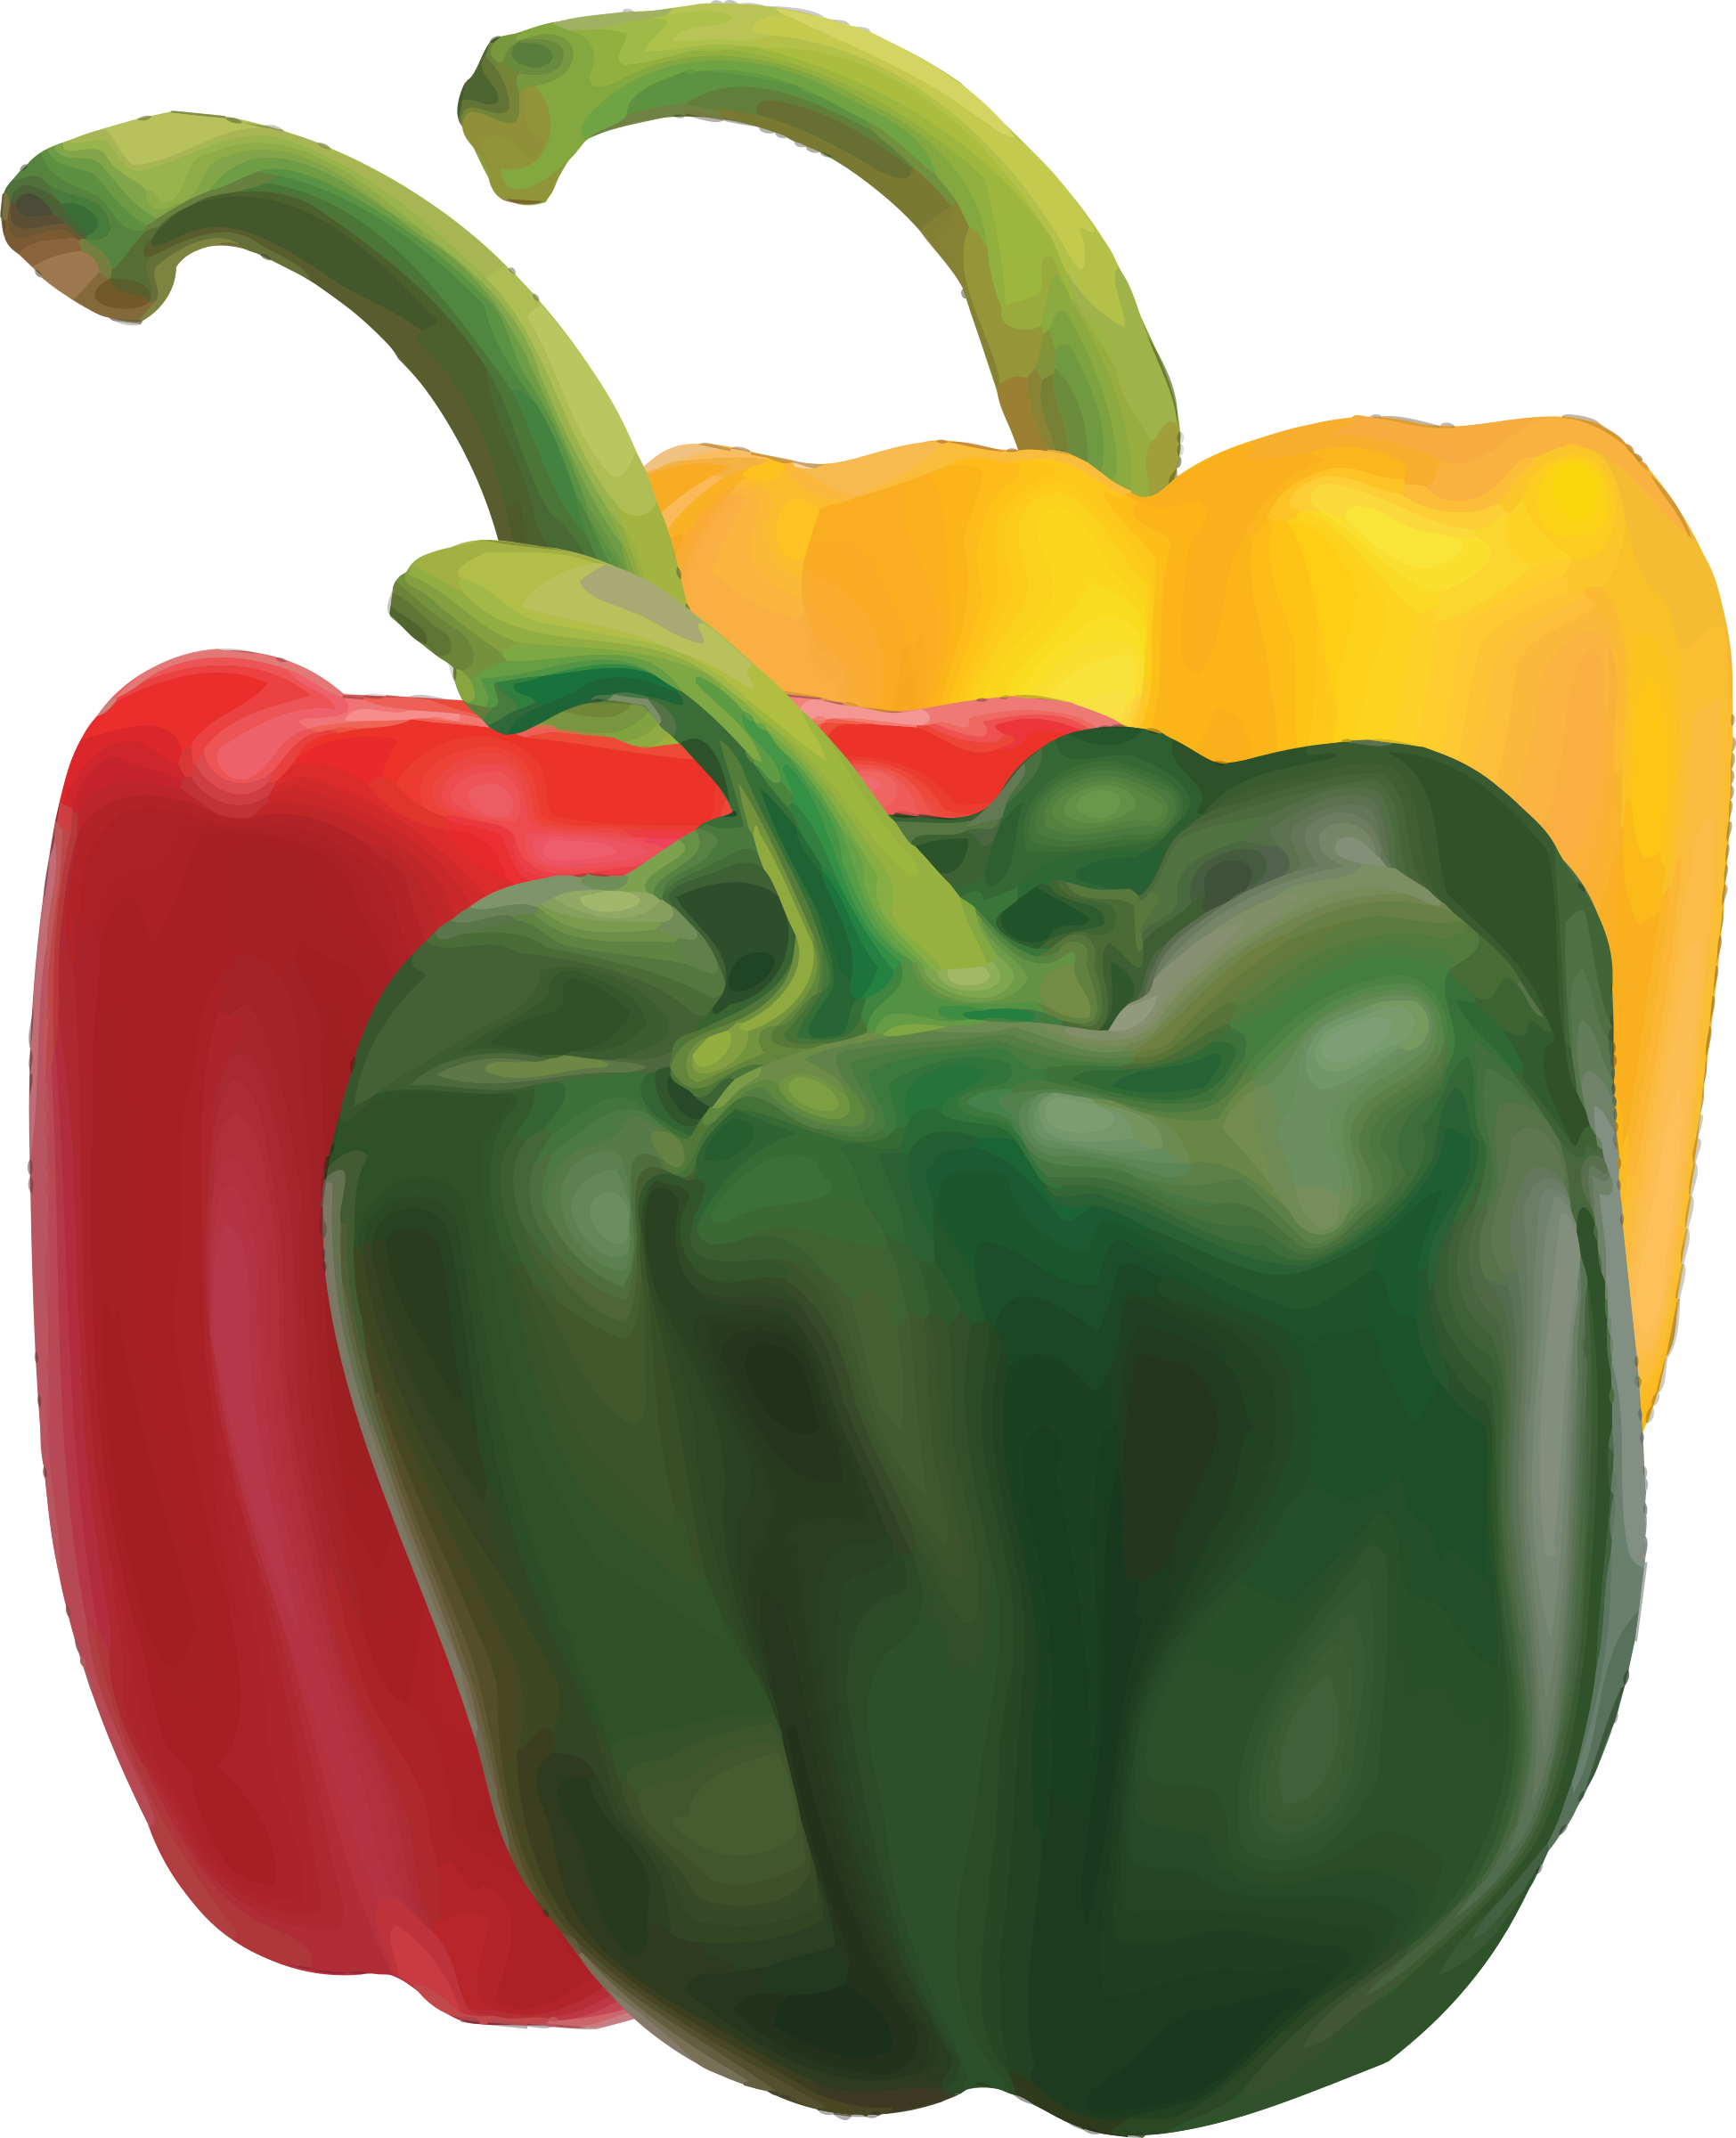 peppers vector art image free stock photo public travel clipart pic travel clip art free